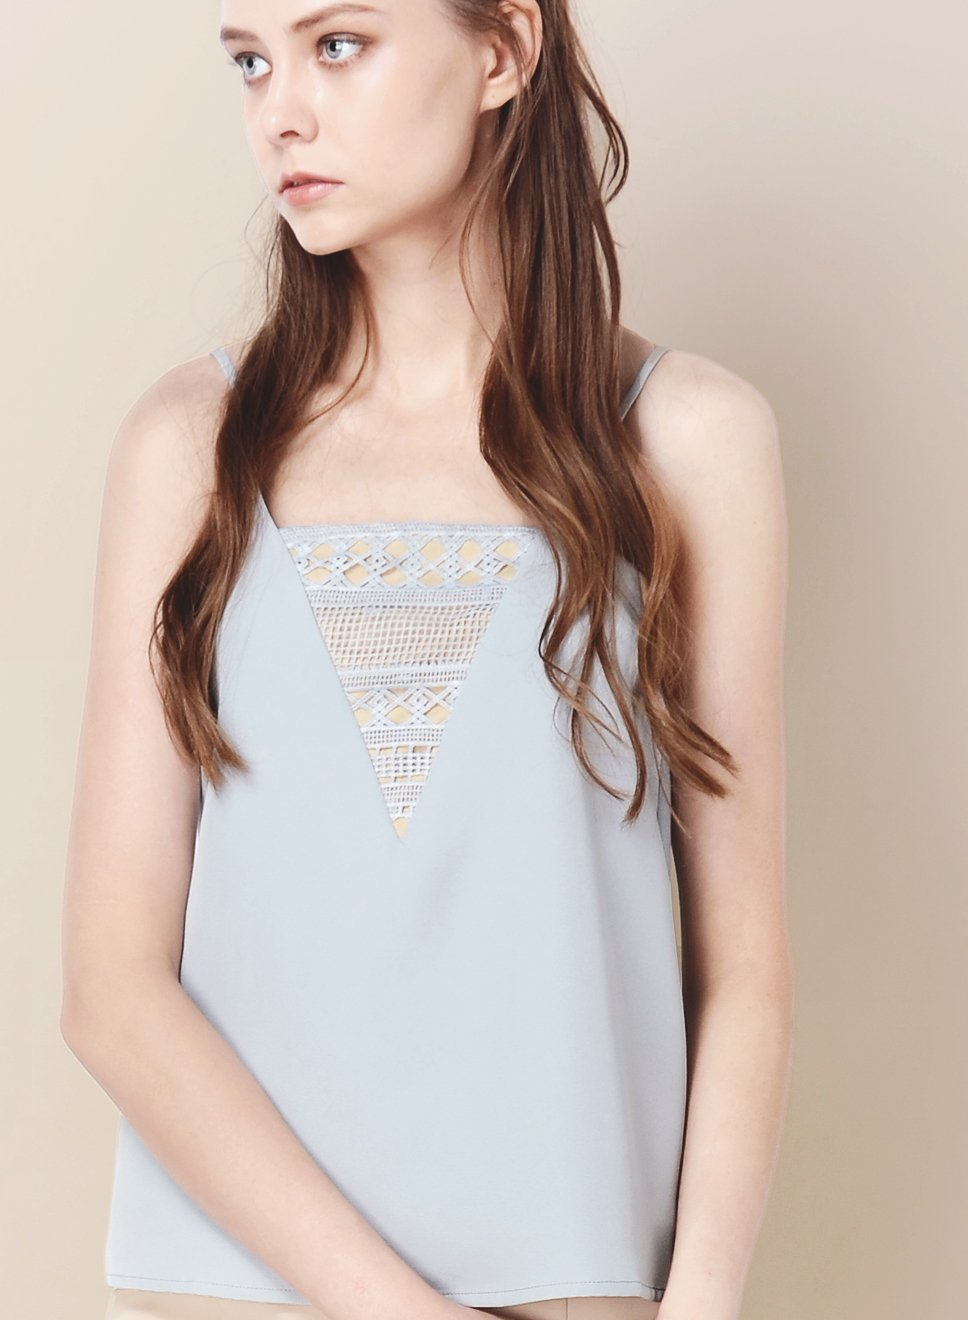 ALLURE Crochet Detail Top (Dusk Blue) at $ 20.50 only sold at And Well Dressed Online Fashion Store Singapore